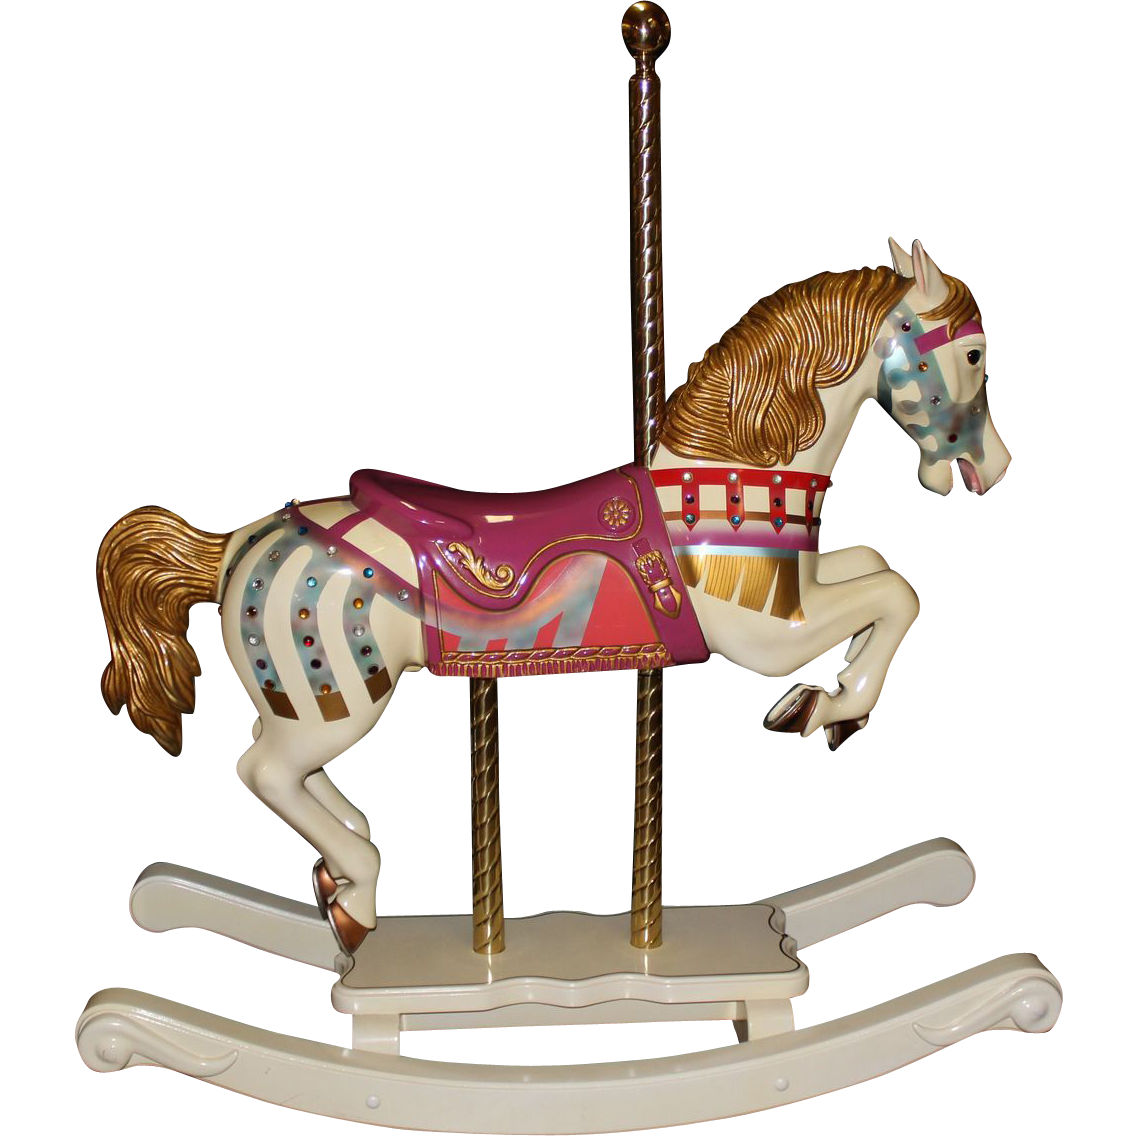 swing chair transparent white leather armless s and woodcarvers diana ross wooden carousel horse with